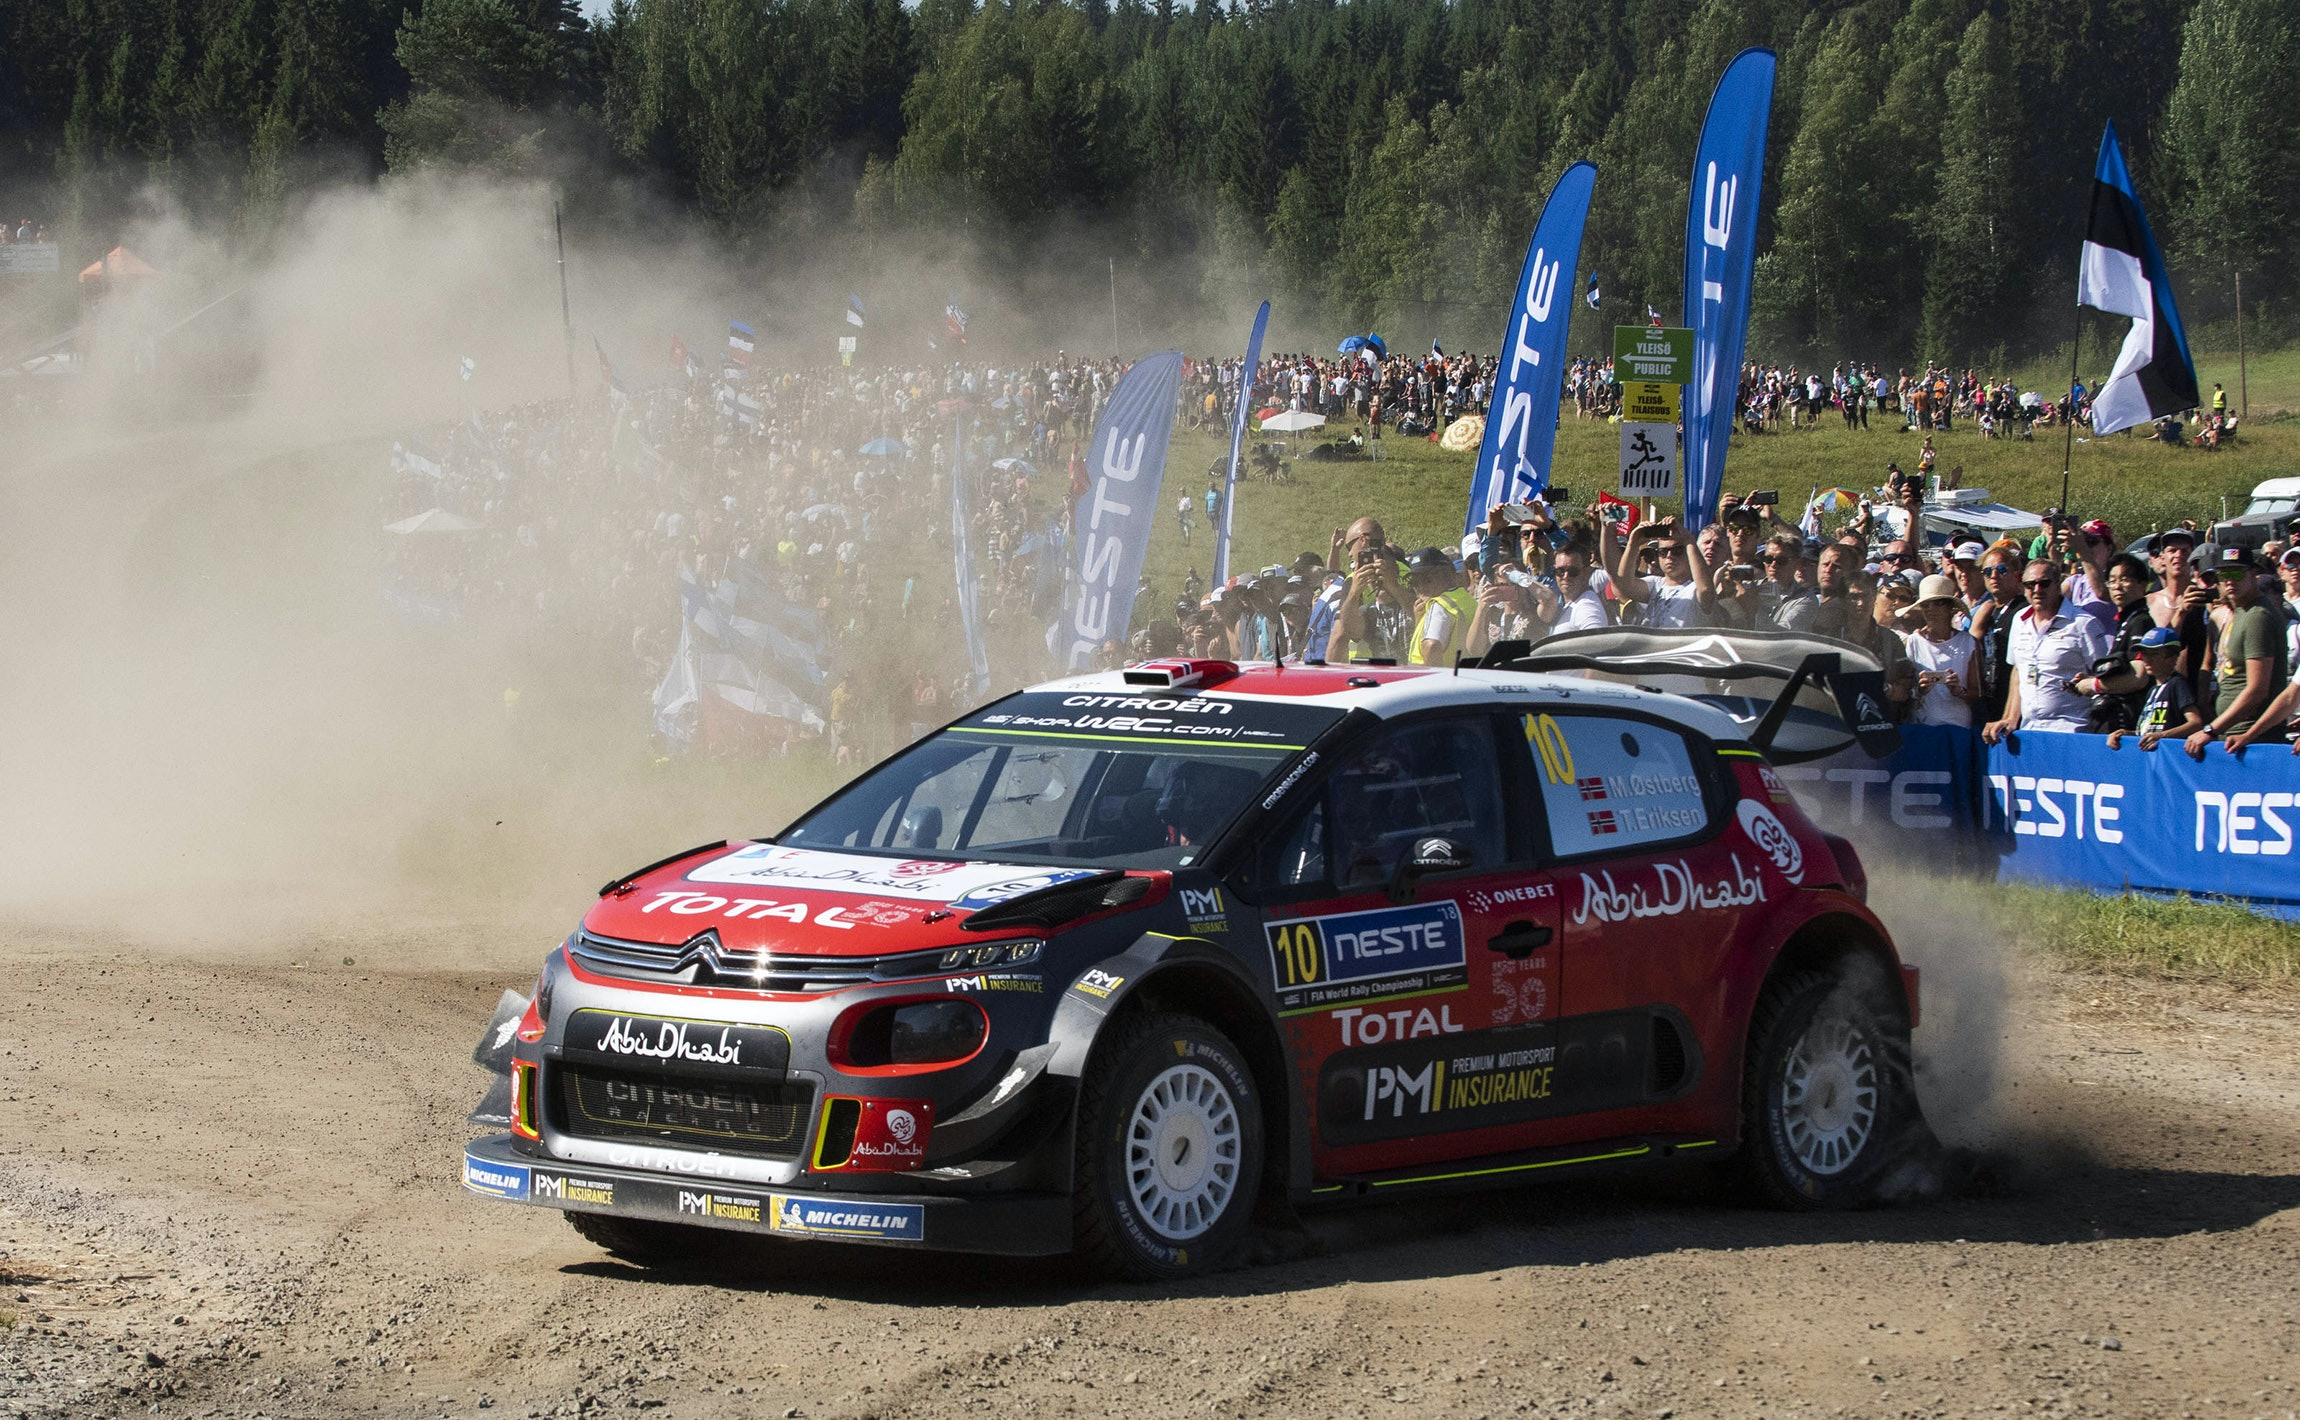 Mads Ostberg (NOR) , Torstein Eriksen (NOR) perform during FIA World Rally Championship 2018 in Jyvaskyla, Finland on 28.07.2018 // Jaanus Ree/Red Bull Content Pool // AP-1WDVGYY852111 // Usage for editorial use only // Please go to www.redbullcontentpool.com for further information. //